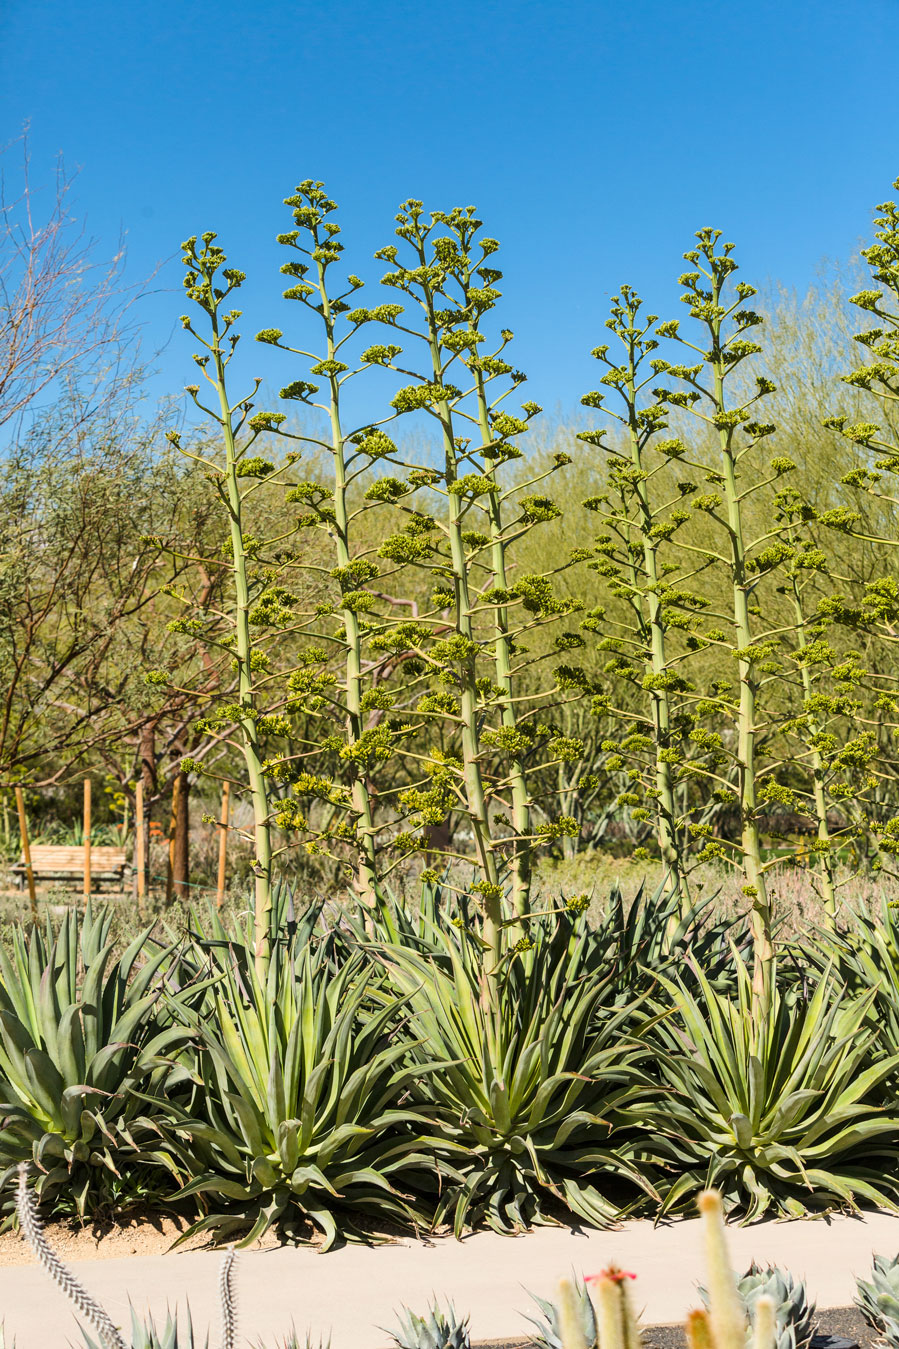 A row of Smooth Agave with fully emerged bloom stalks in the gardens.